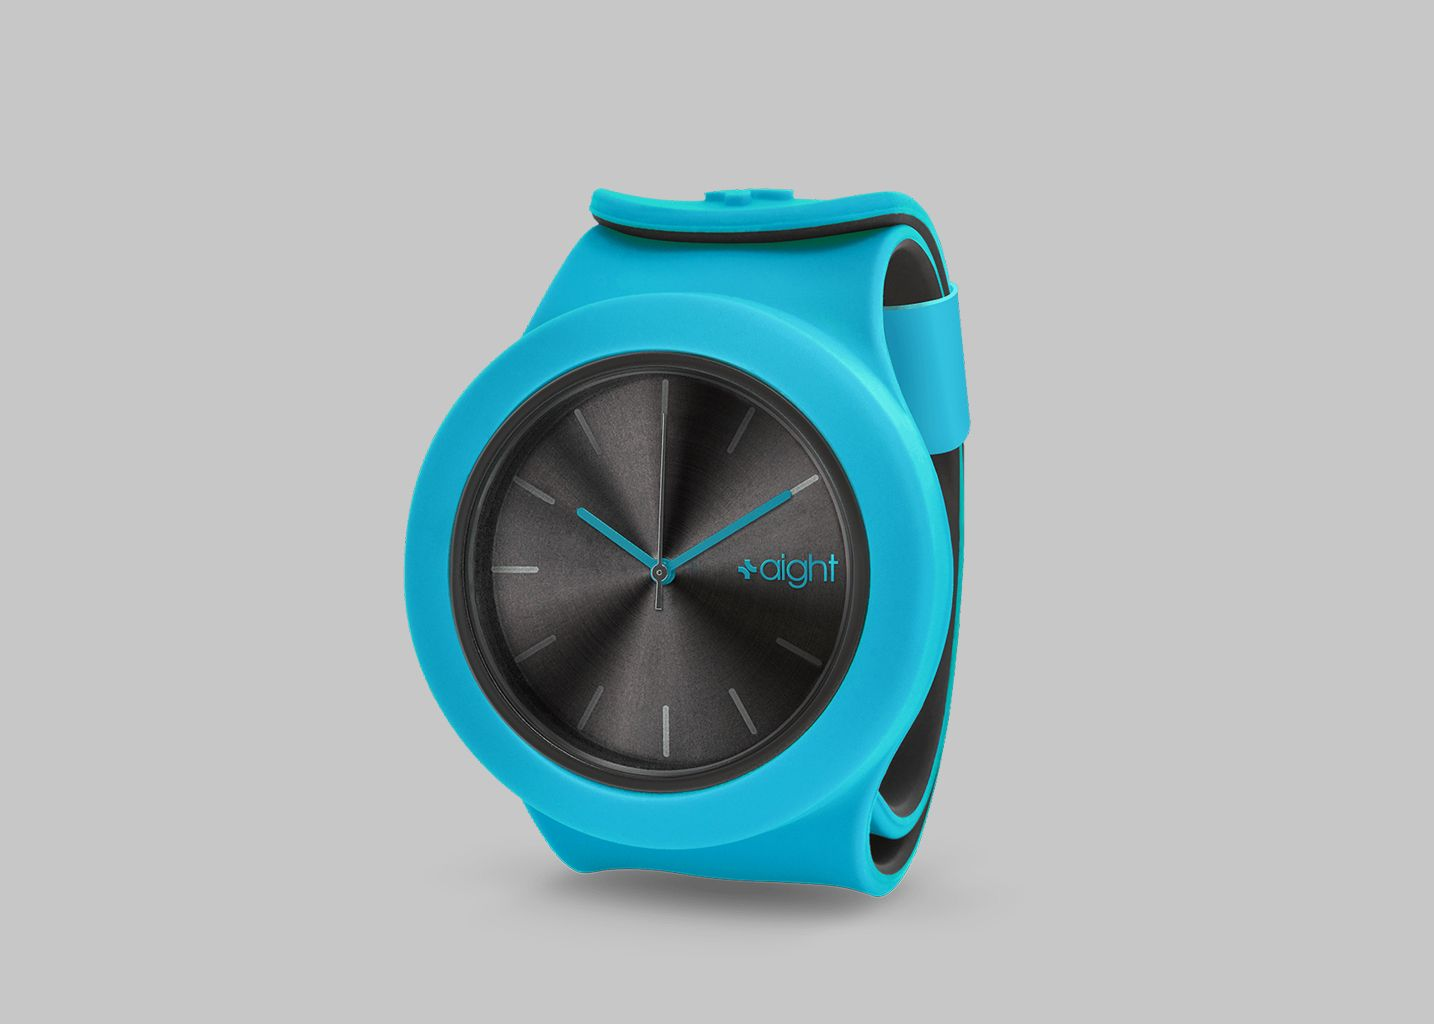 Montre Caribbean Blue - Aight